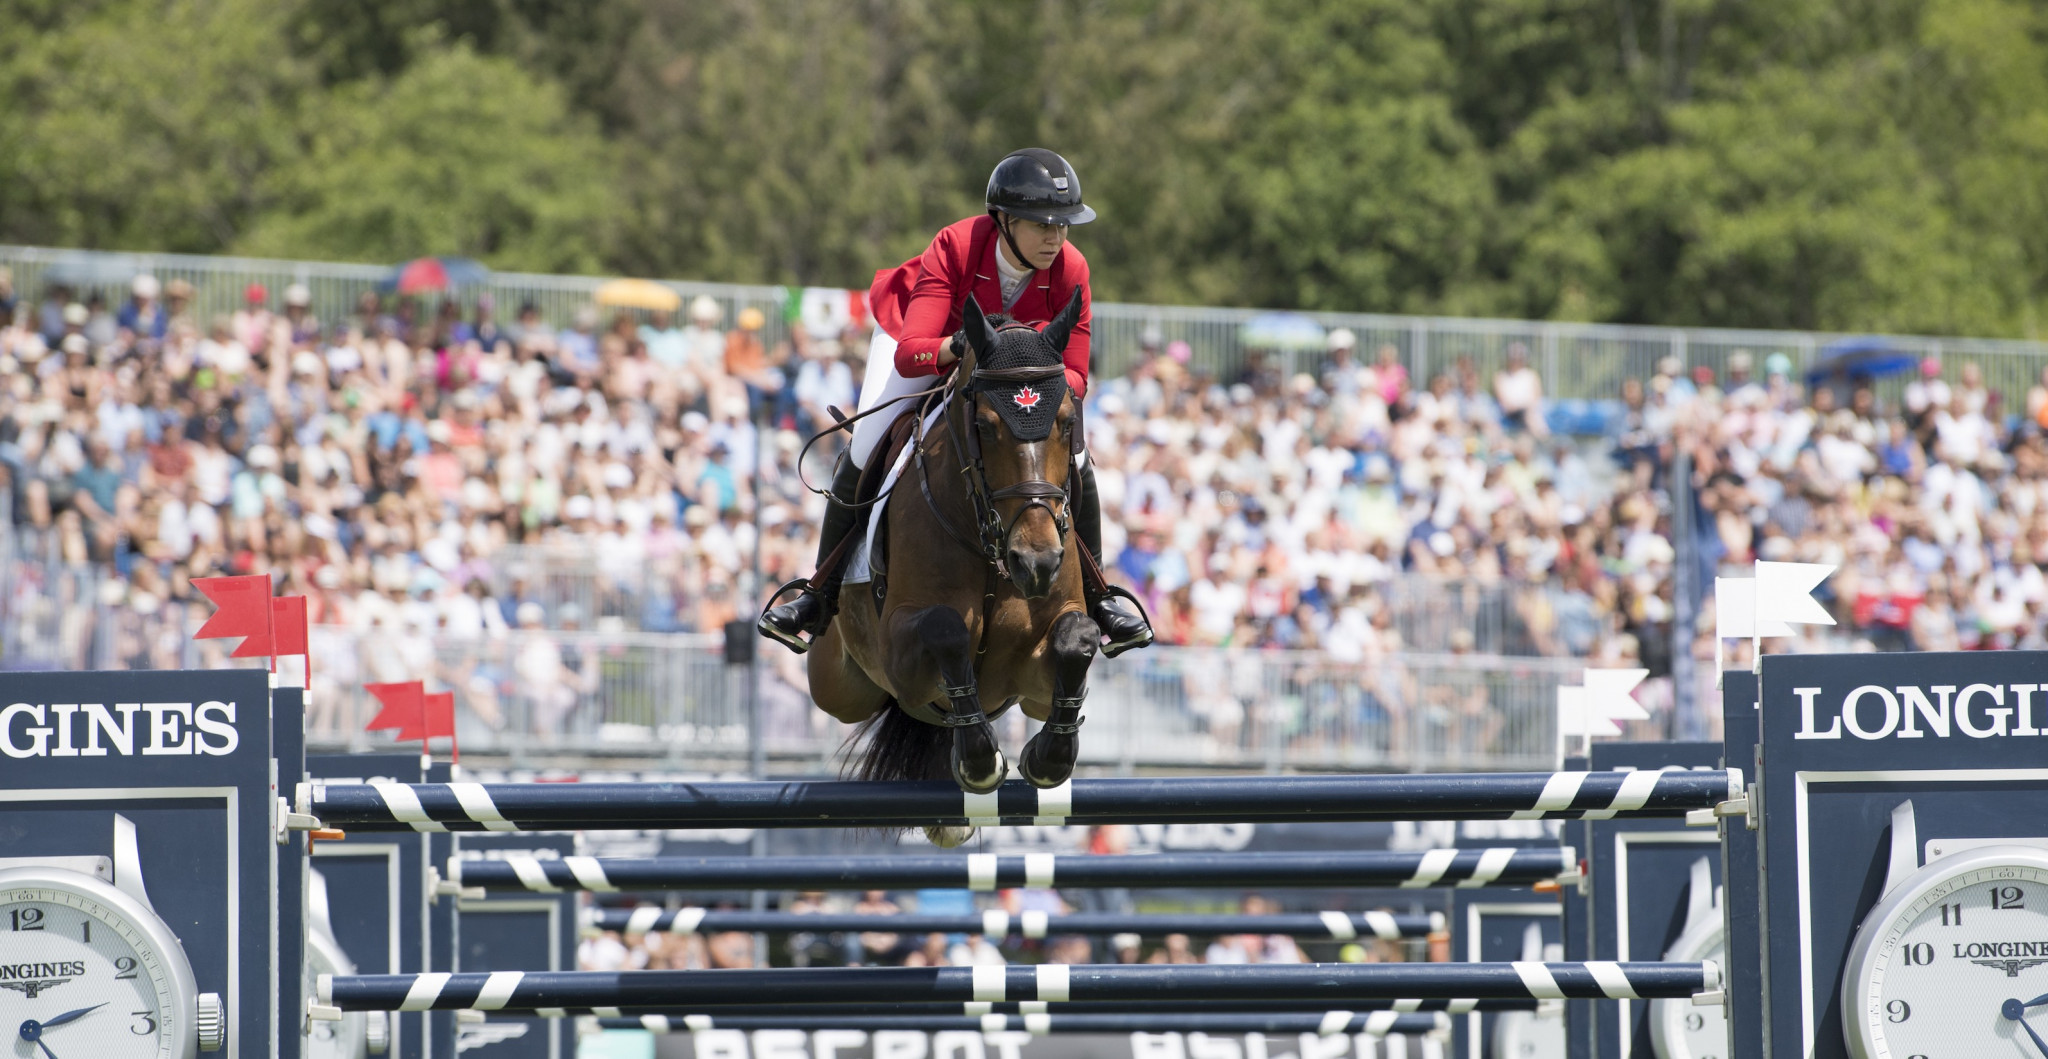 Canada triumphed at their home FEI Jumping Nations Cup event in Langley ©FEI